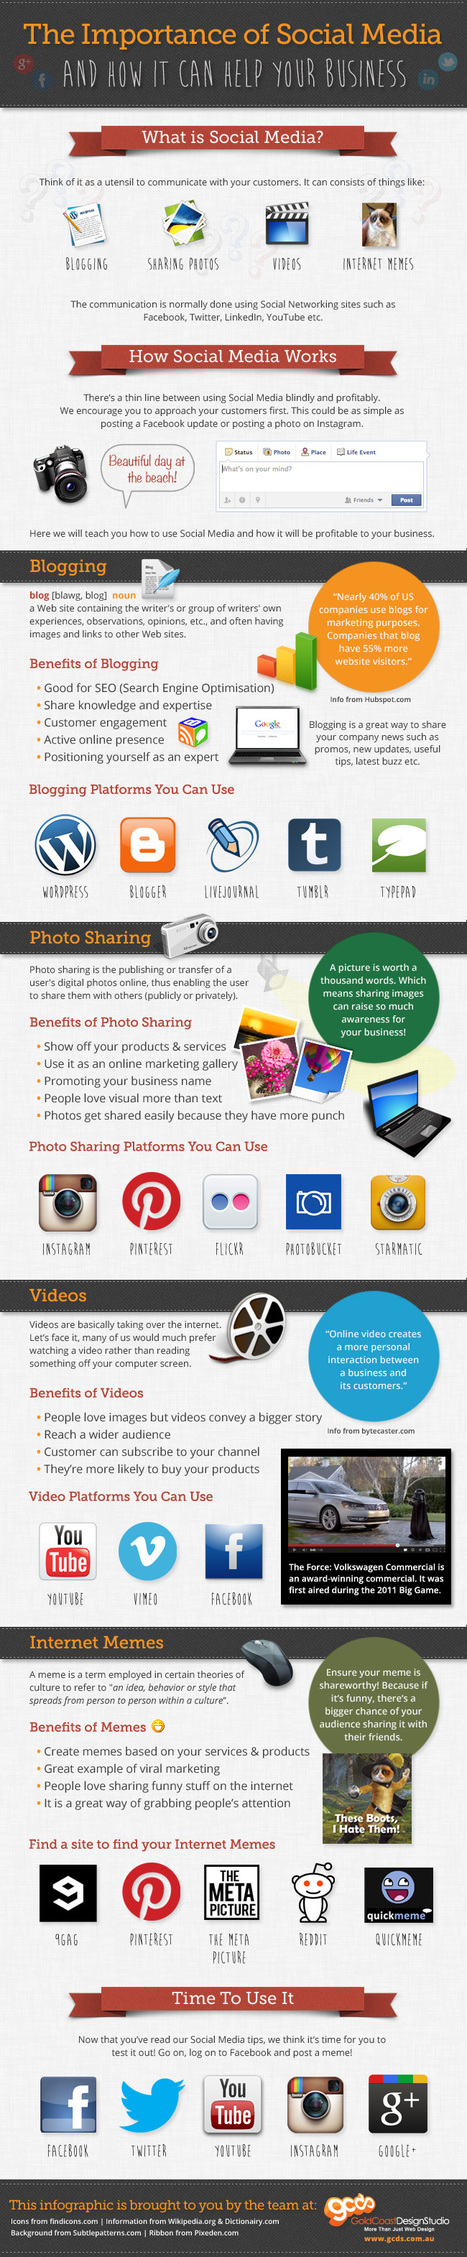 The Importance of Social Media and How it can help your business | Visual.ly | Marketing Revolution | Scoop.it